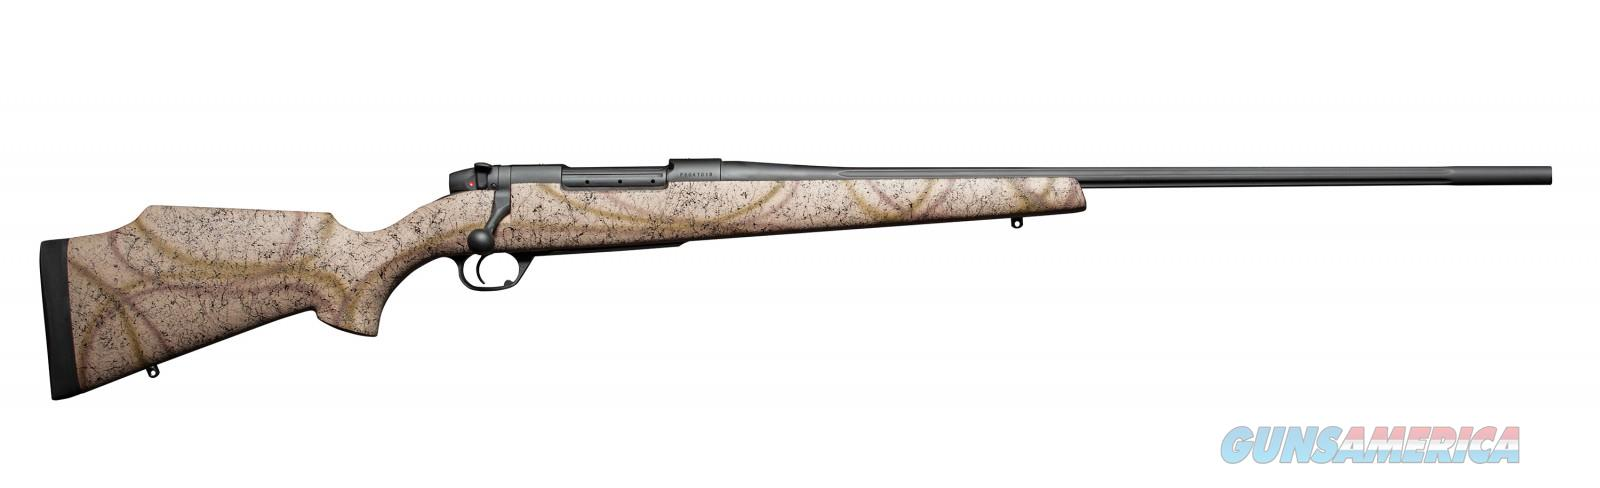 "Weatherby Mark V Outfitter RC .257 Wby Mag 26"" MOFM257WR6O  Guns > Rifles > Weatherby Rifles > Sporting"